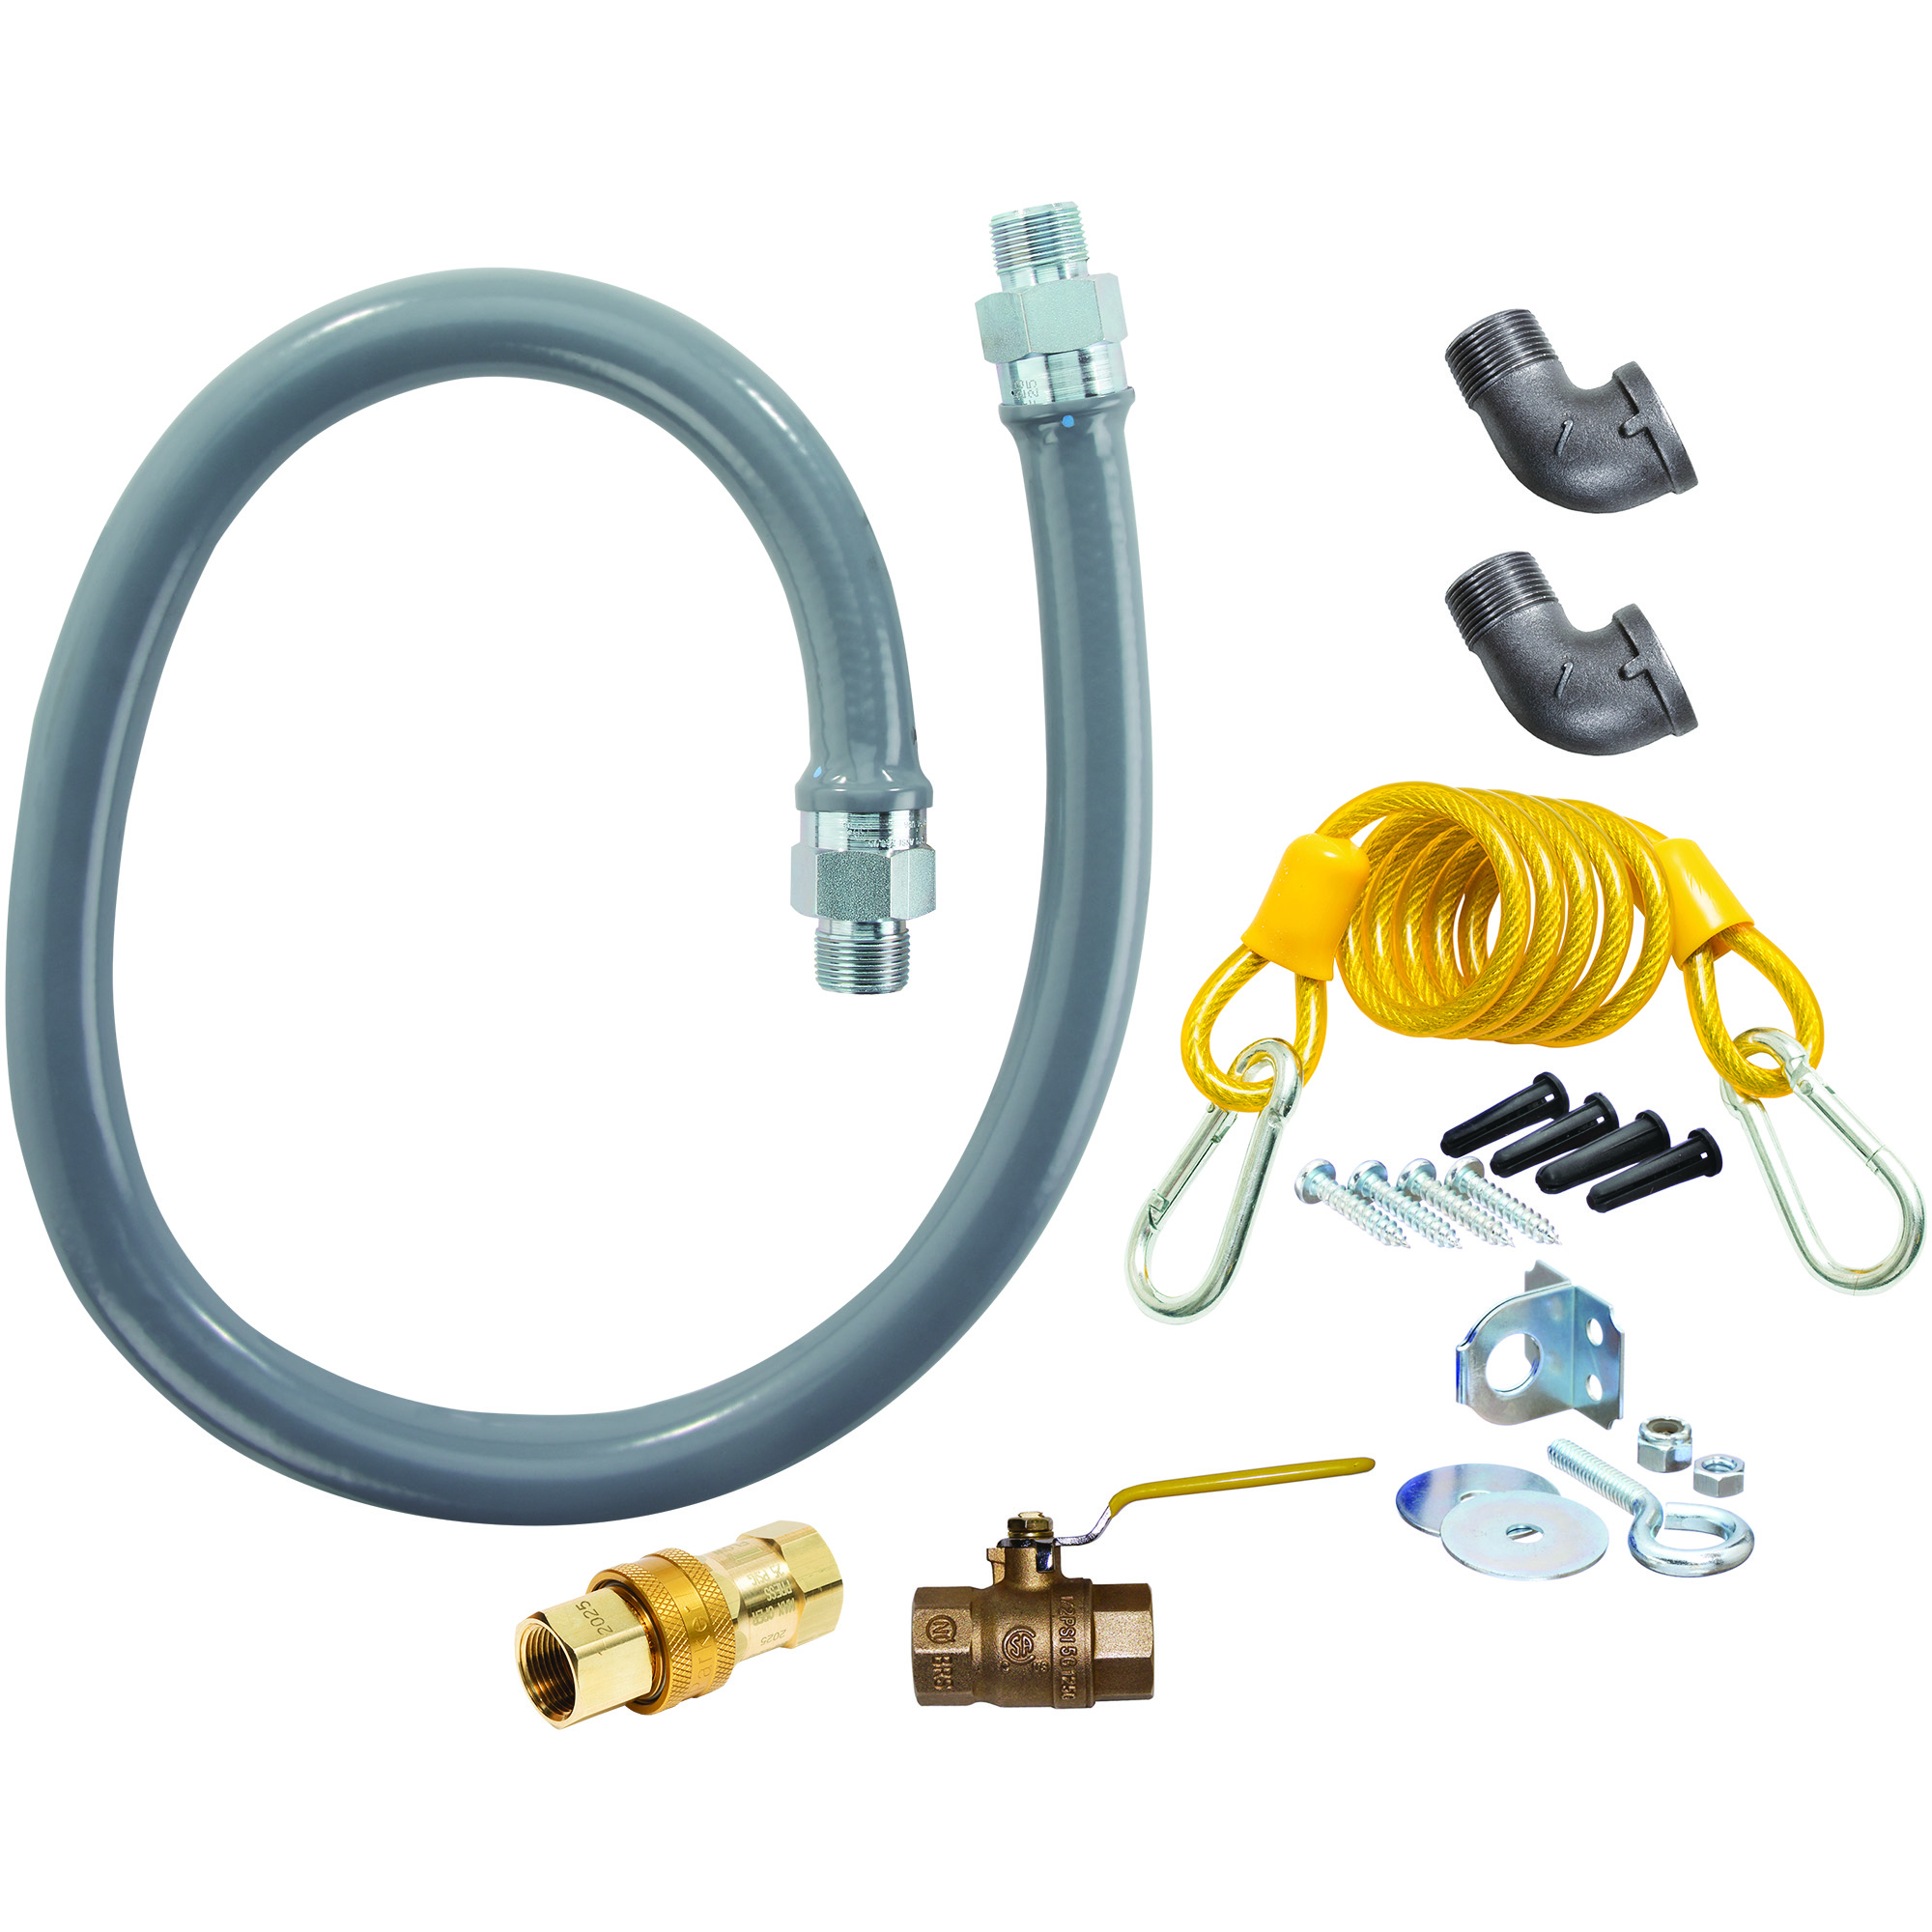 Dormont Manufacturing RG10060 gas connector hose kit